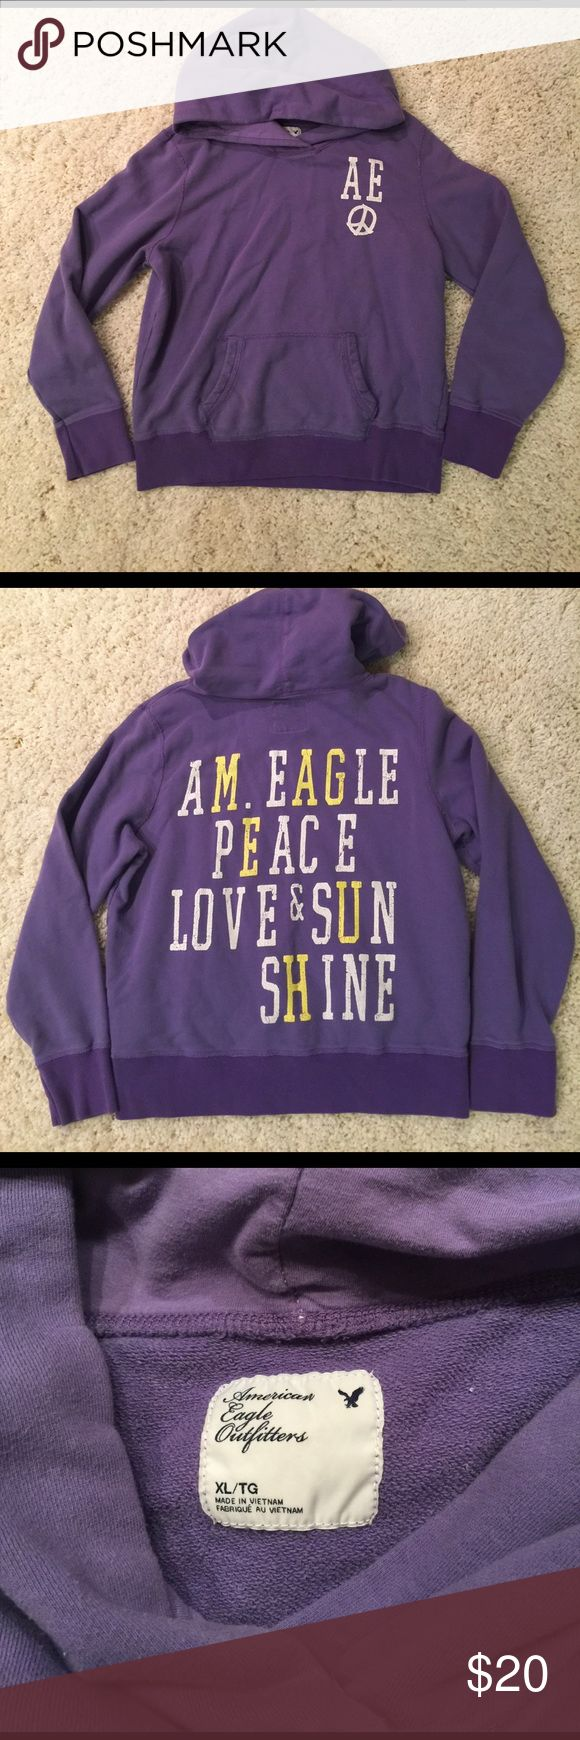 American Eagle Sweatshirt Cozy purple American Eagle sweatshirt. There is cracking in the screen print, but that is how the sweatshirt was designed. The sweatshirt has only been worn a few times and is in great condition. American Eagle Outfitters Tops Sweatshirts & Hoodies